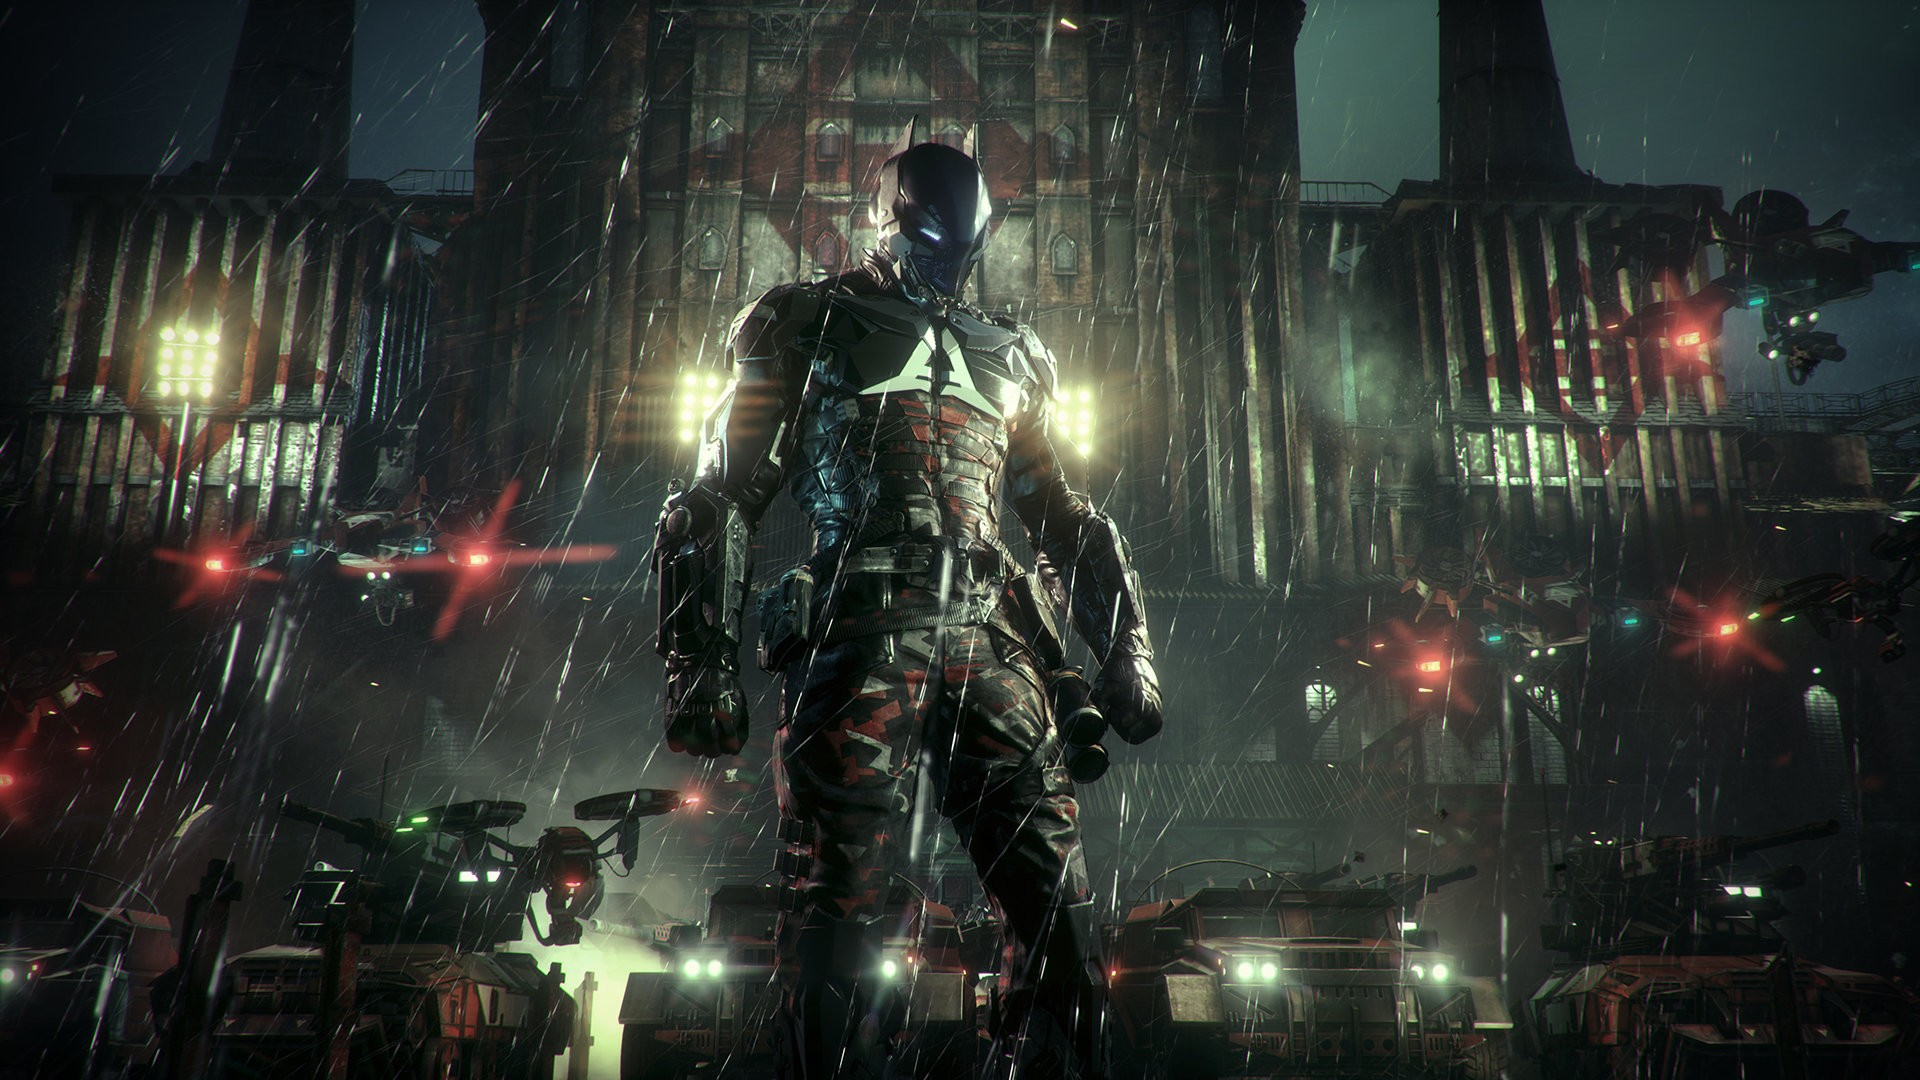 Batman-Arkham-Knight-Will-Be-quot-The-Ultimate-Batman-Simulator-quot-Rocksteady-Says-460890-5